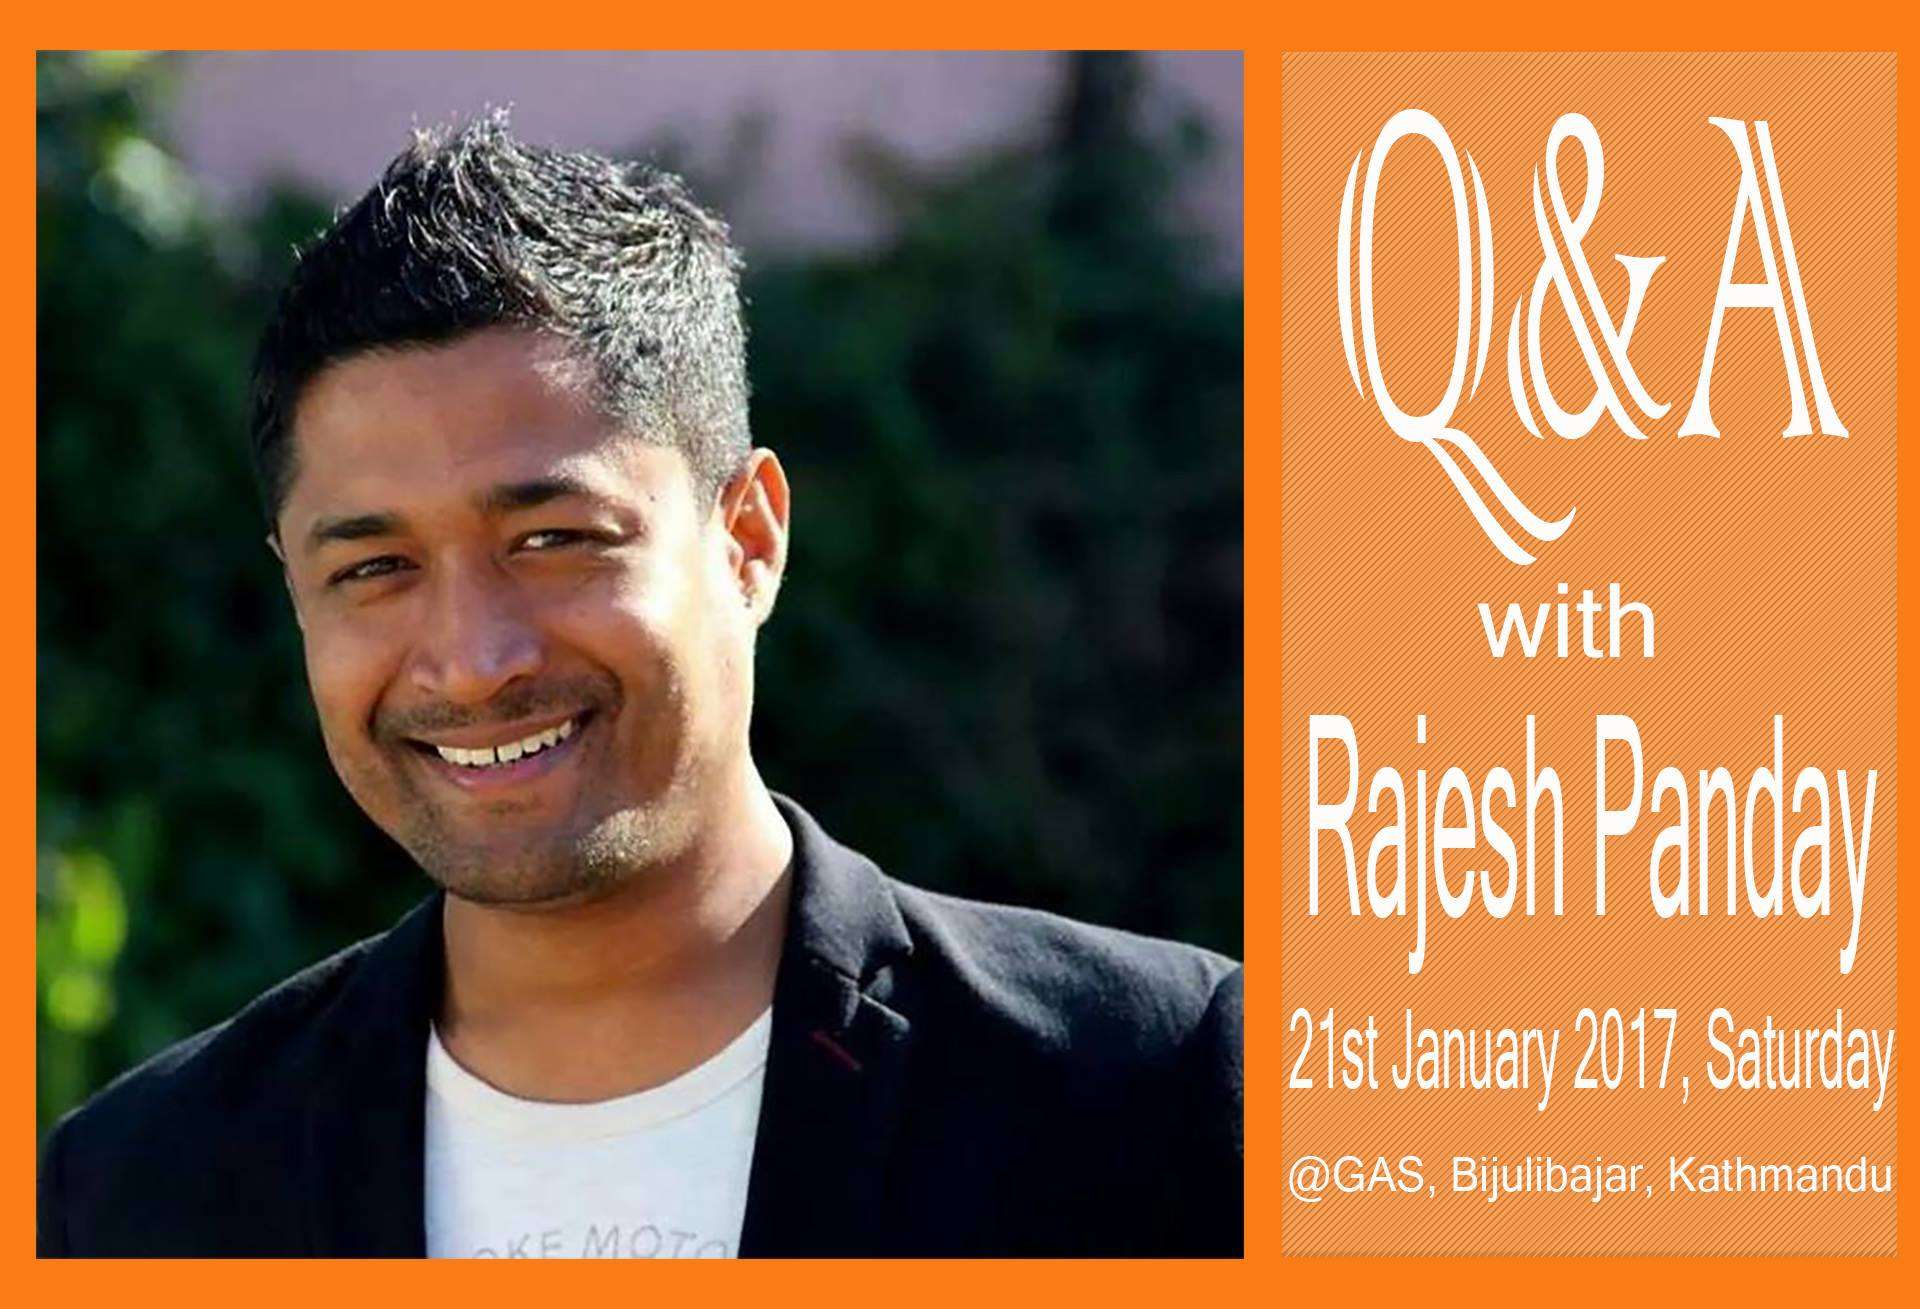 Q&A Session with Rajesh Pandey